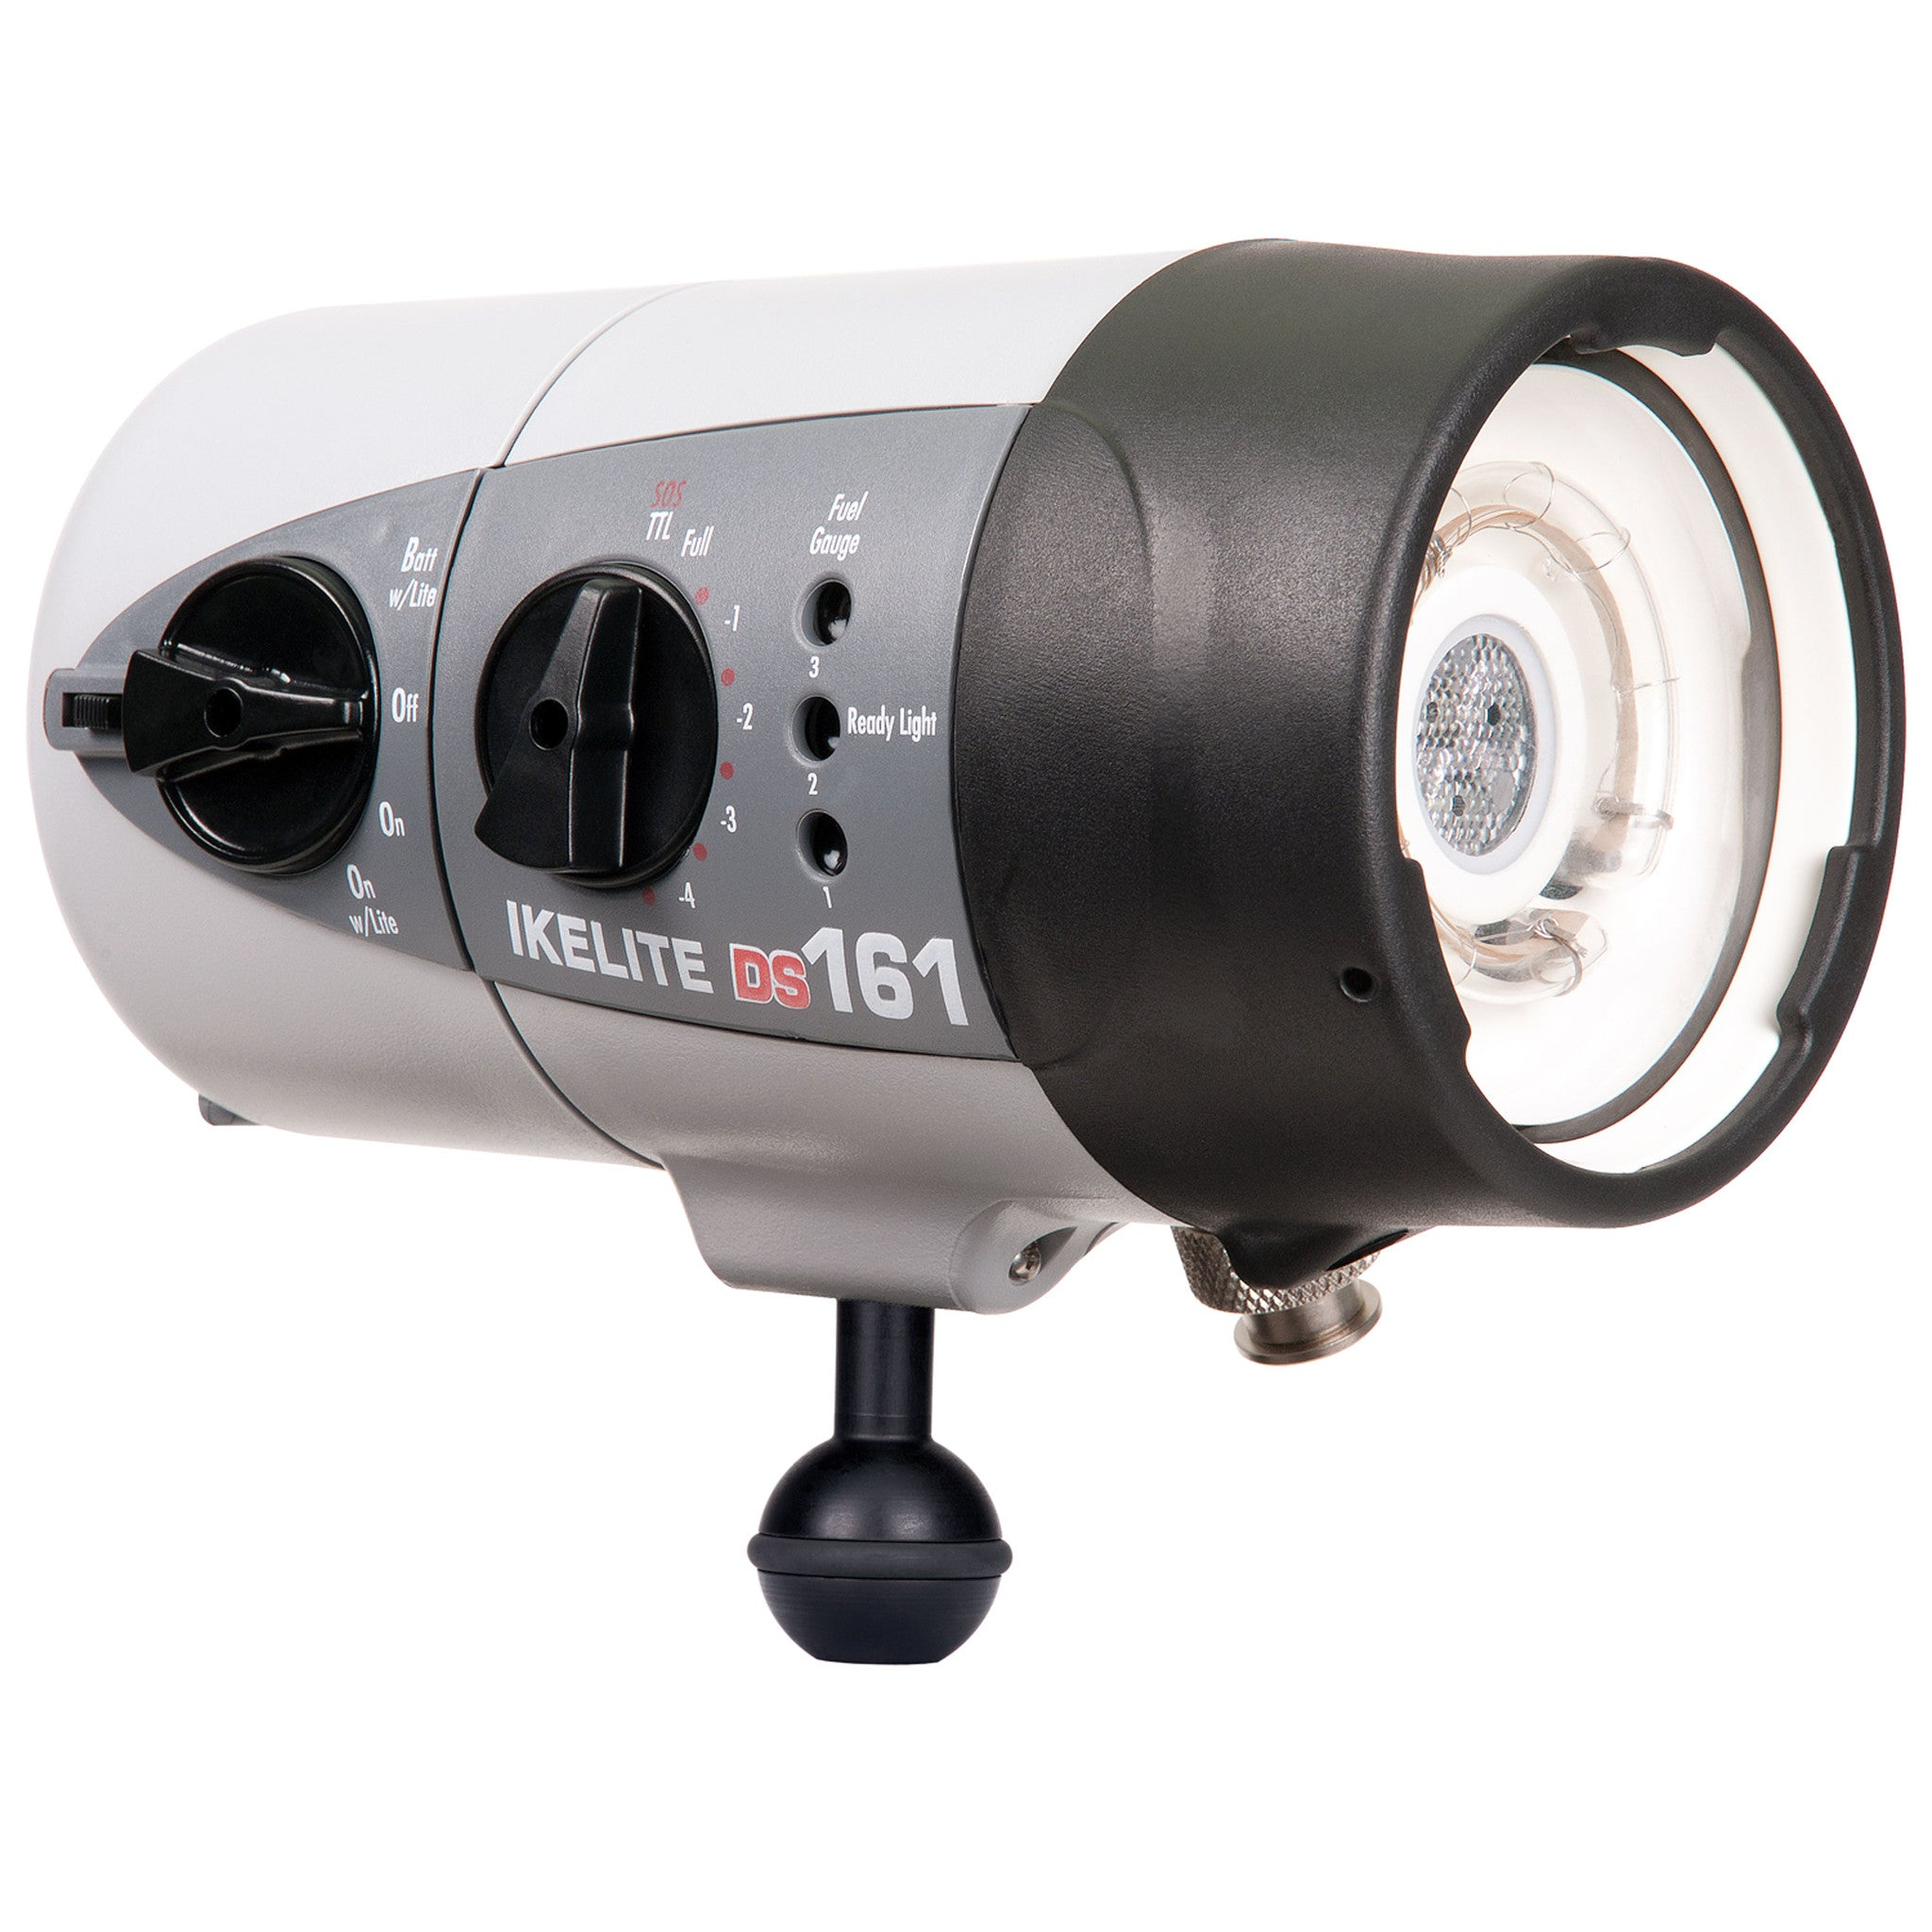 Ikelite DS161 Strobe & Video Light with NiMH Battery (USA) - Underwater - Ikelite - Helix Camera